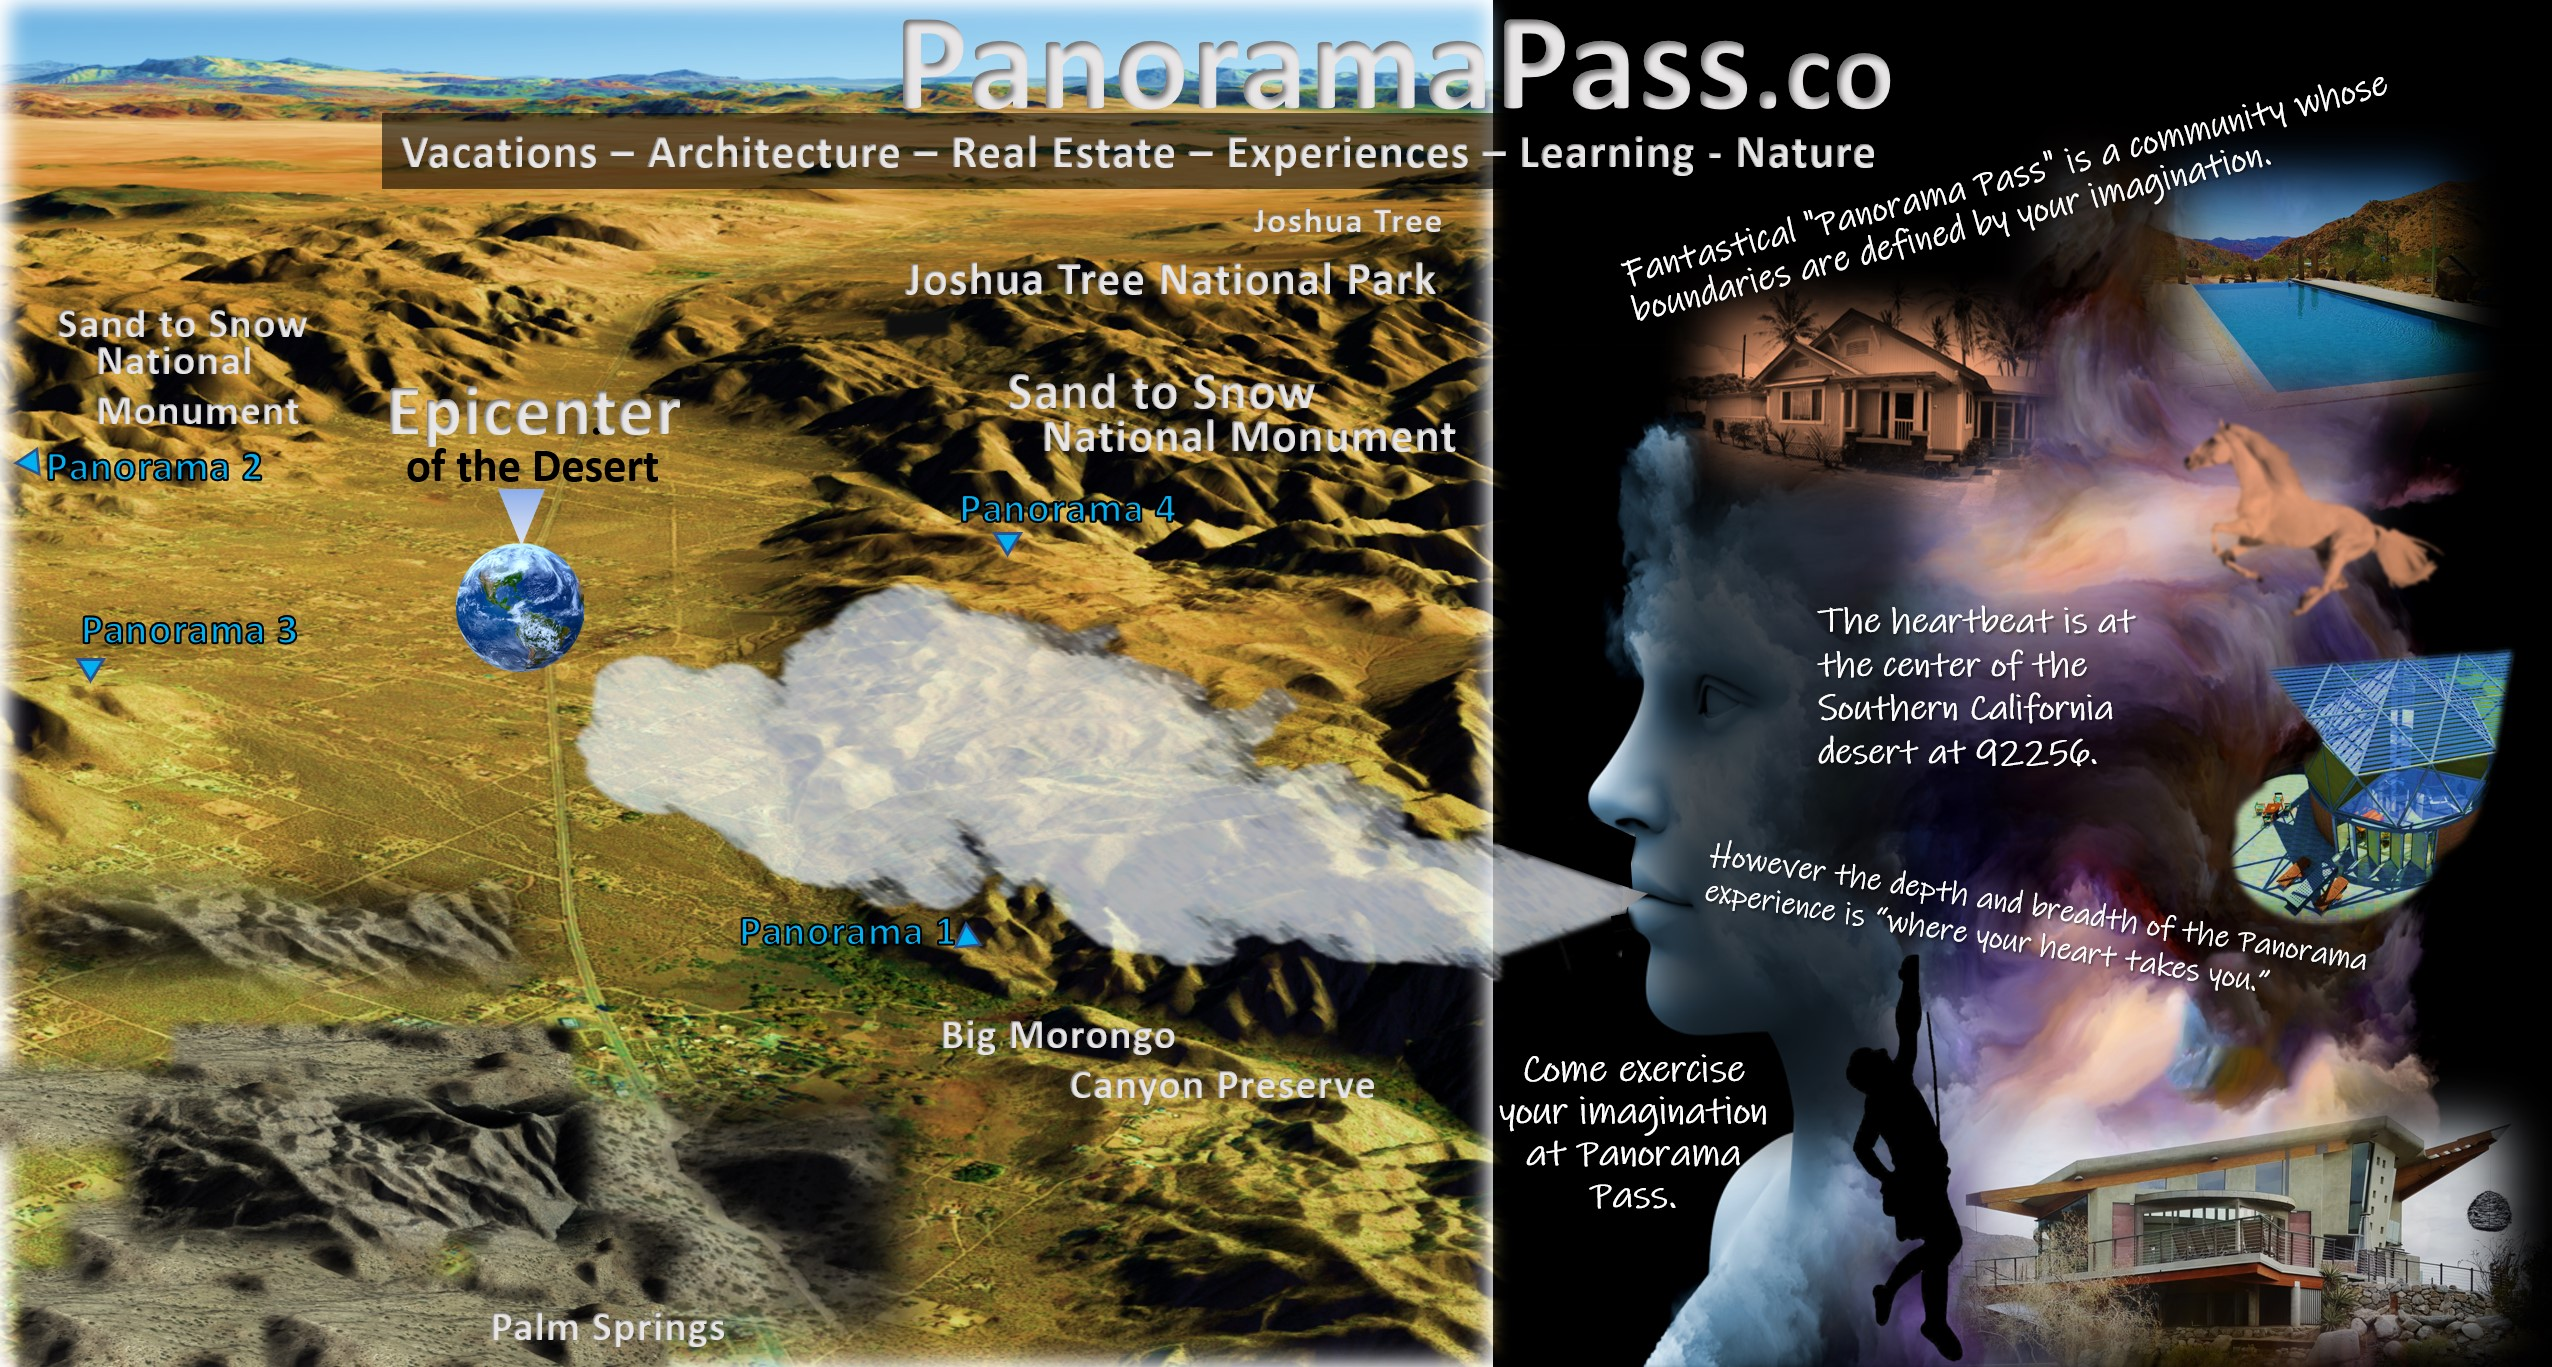 Head and Map - Cover photo